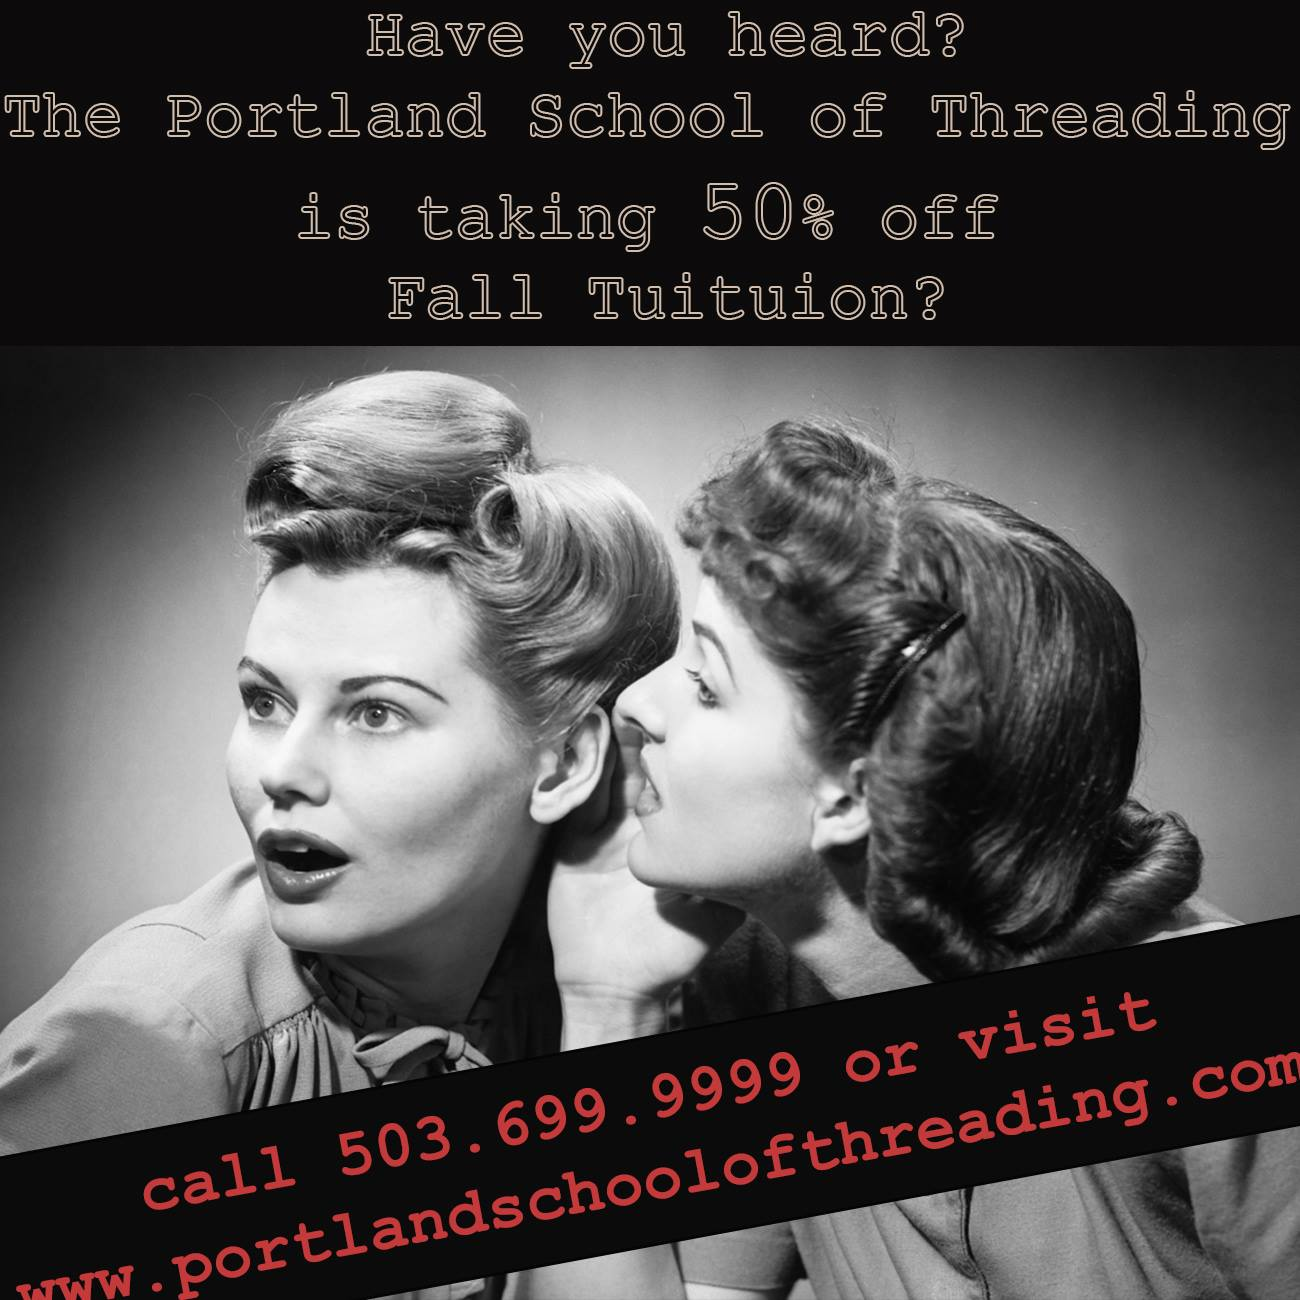 portland school of threading 50% off tuition